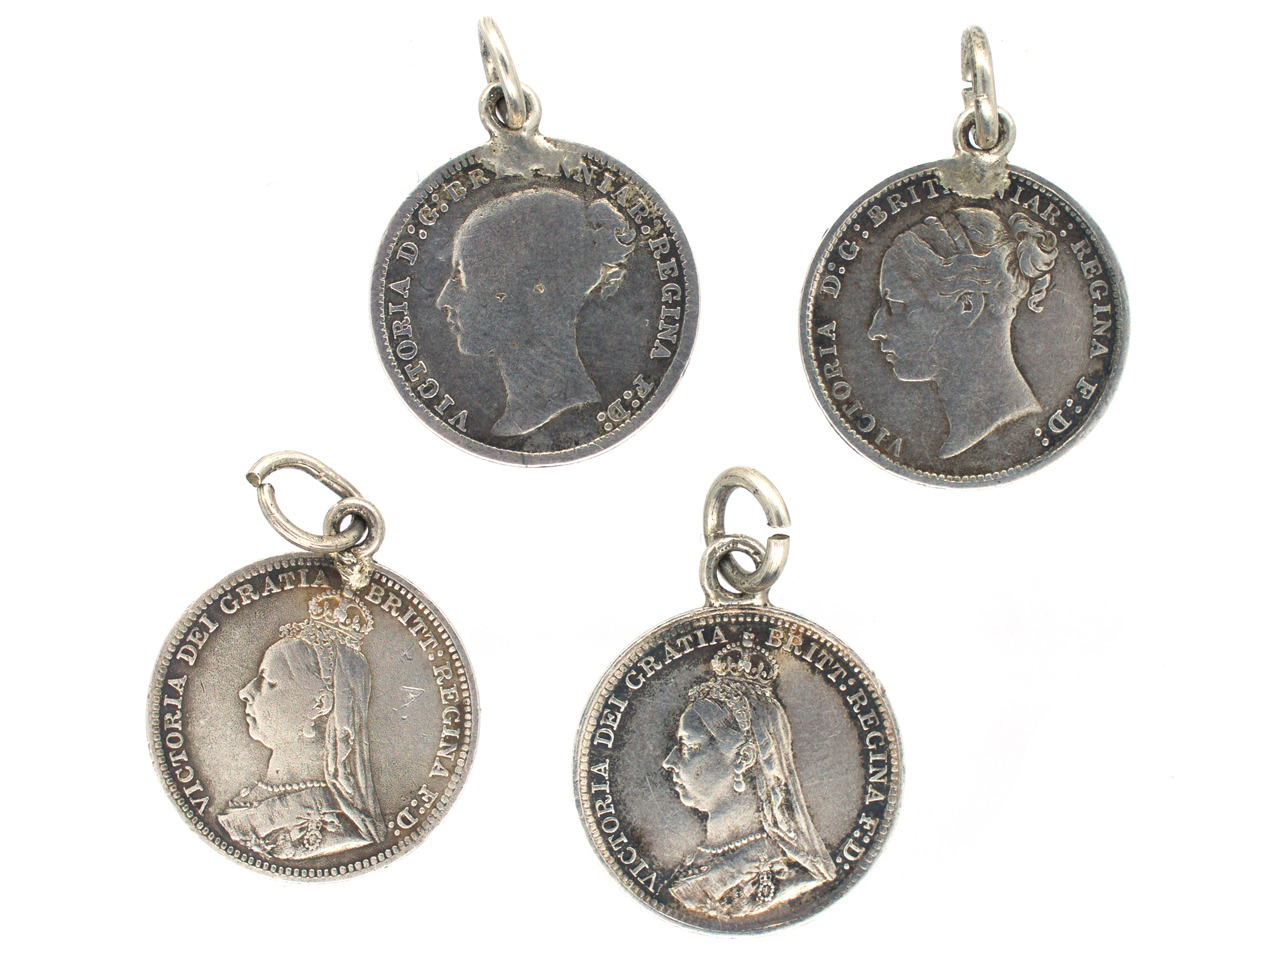 Four Victorian Silver Sixpence Charms with Grandma, Tom, Alice and We on the reverse